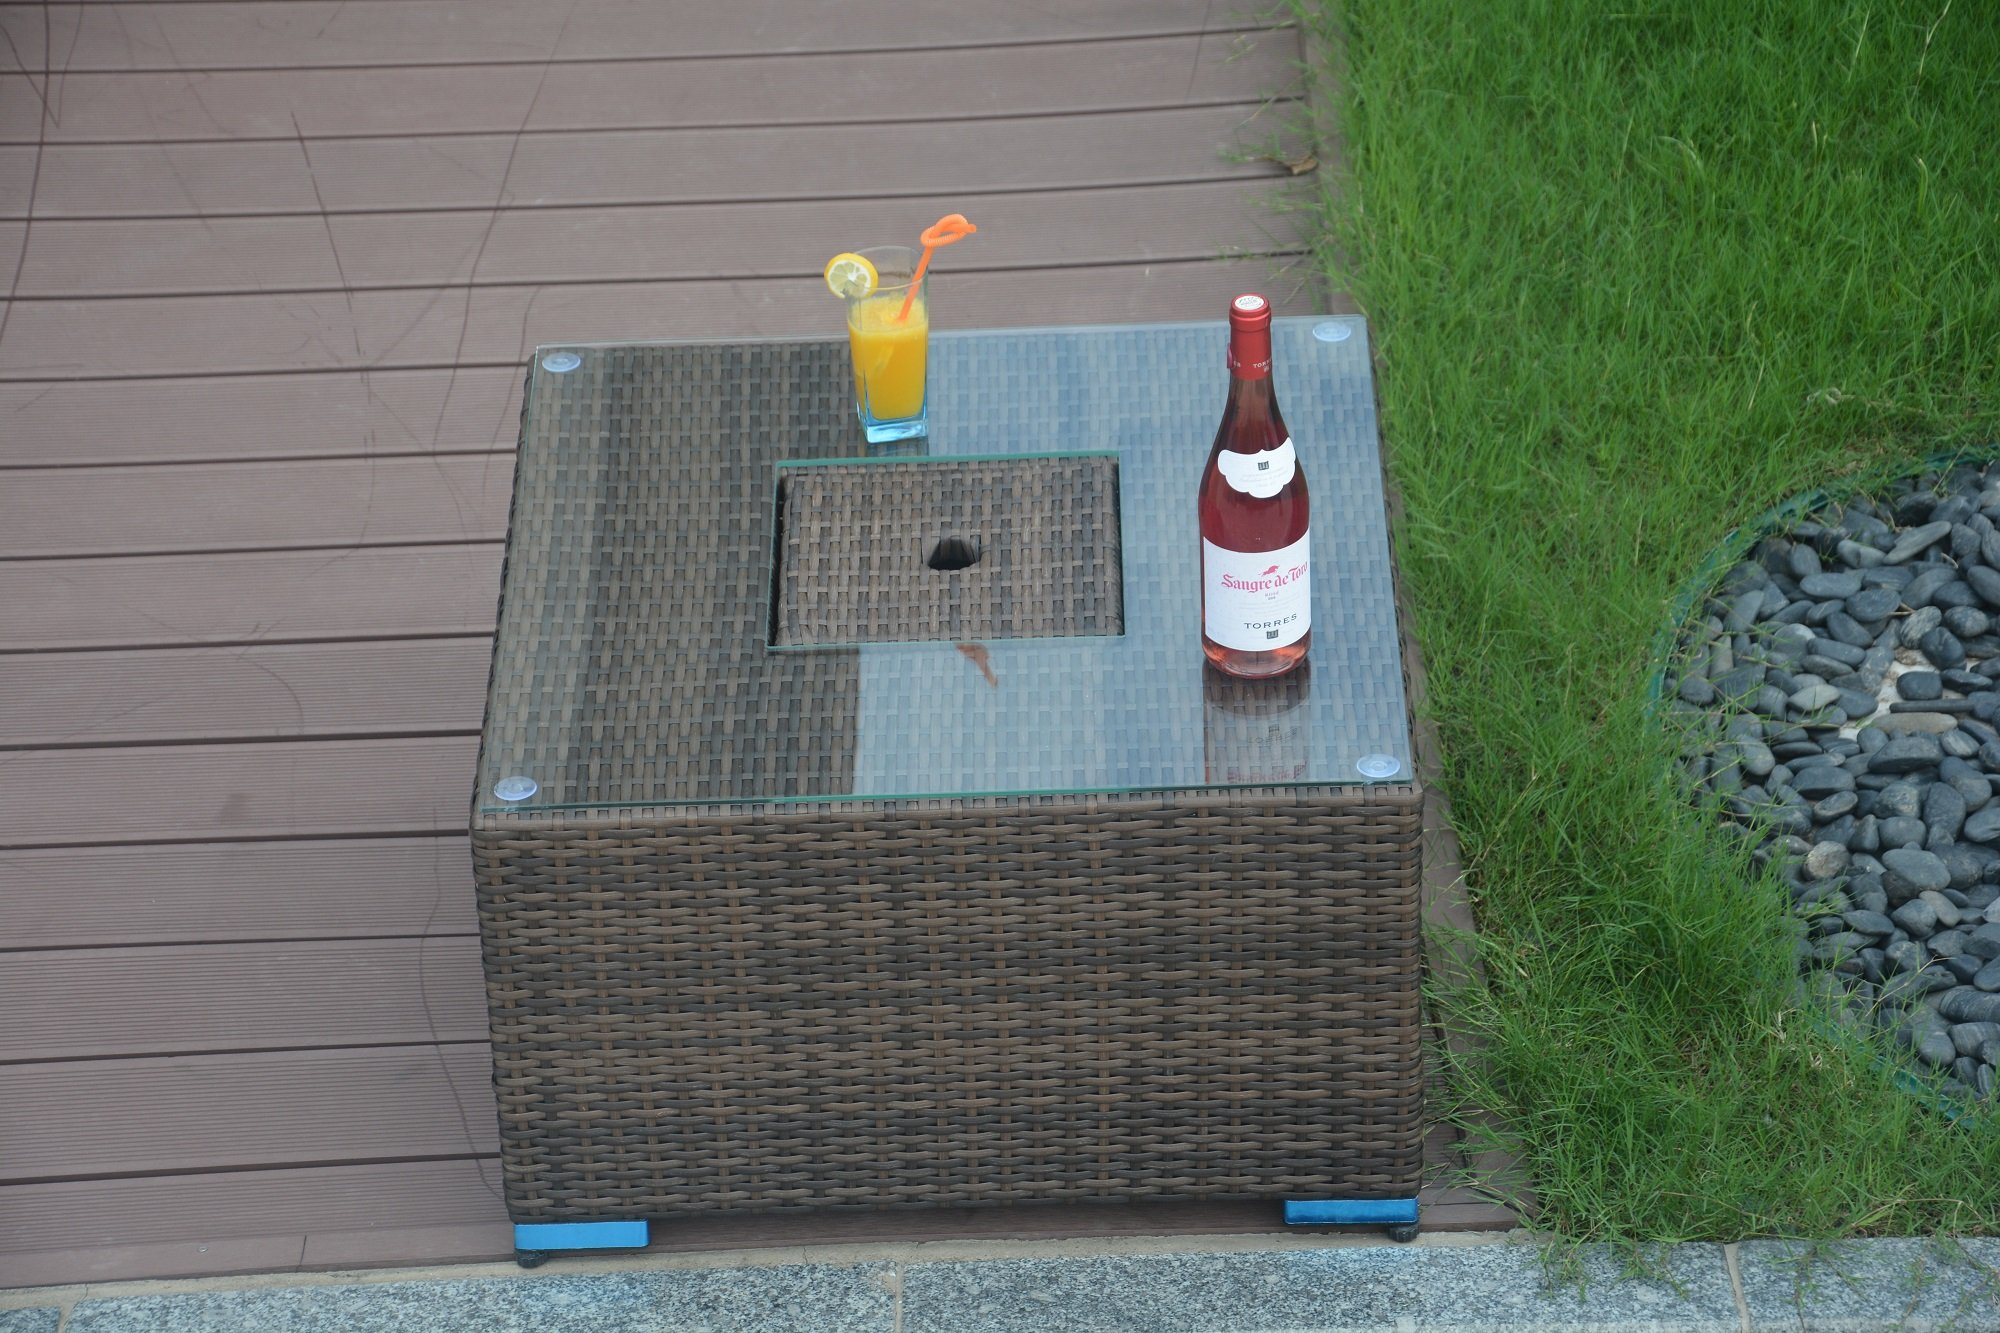 brown wicker side table find outdoor with ice bucket direct square cooler patio bar umbrellas that provide shade cover for and chairs cool home decor british furniture designers